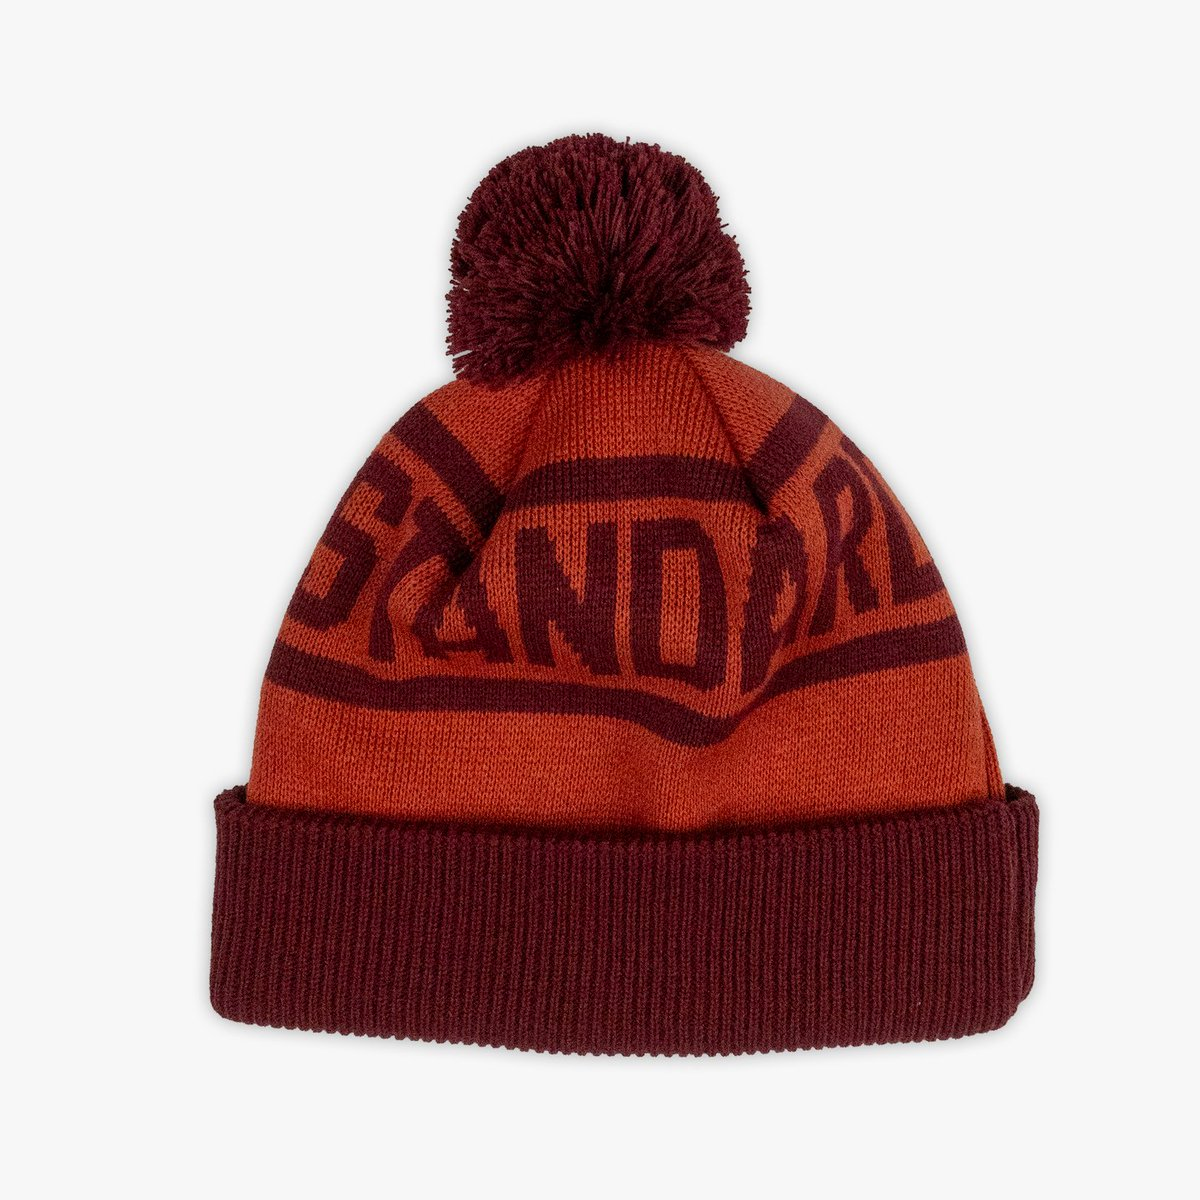 f89e215554d Hats are standard issue for the mountain uniform. You ve got 48 hrs to pick  up one or more for 50% off. Tomorrow is the last day all Mountain Standard  ...